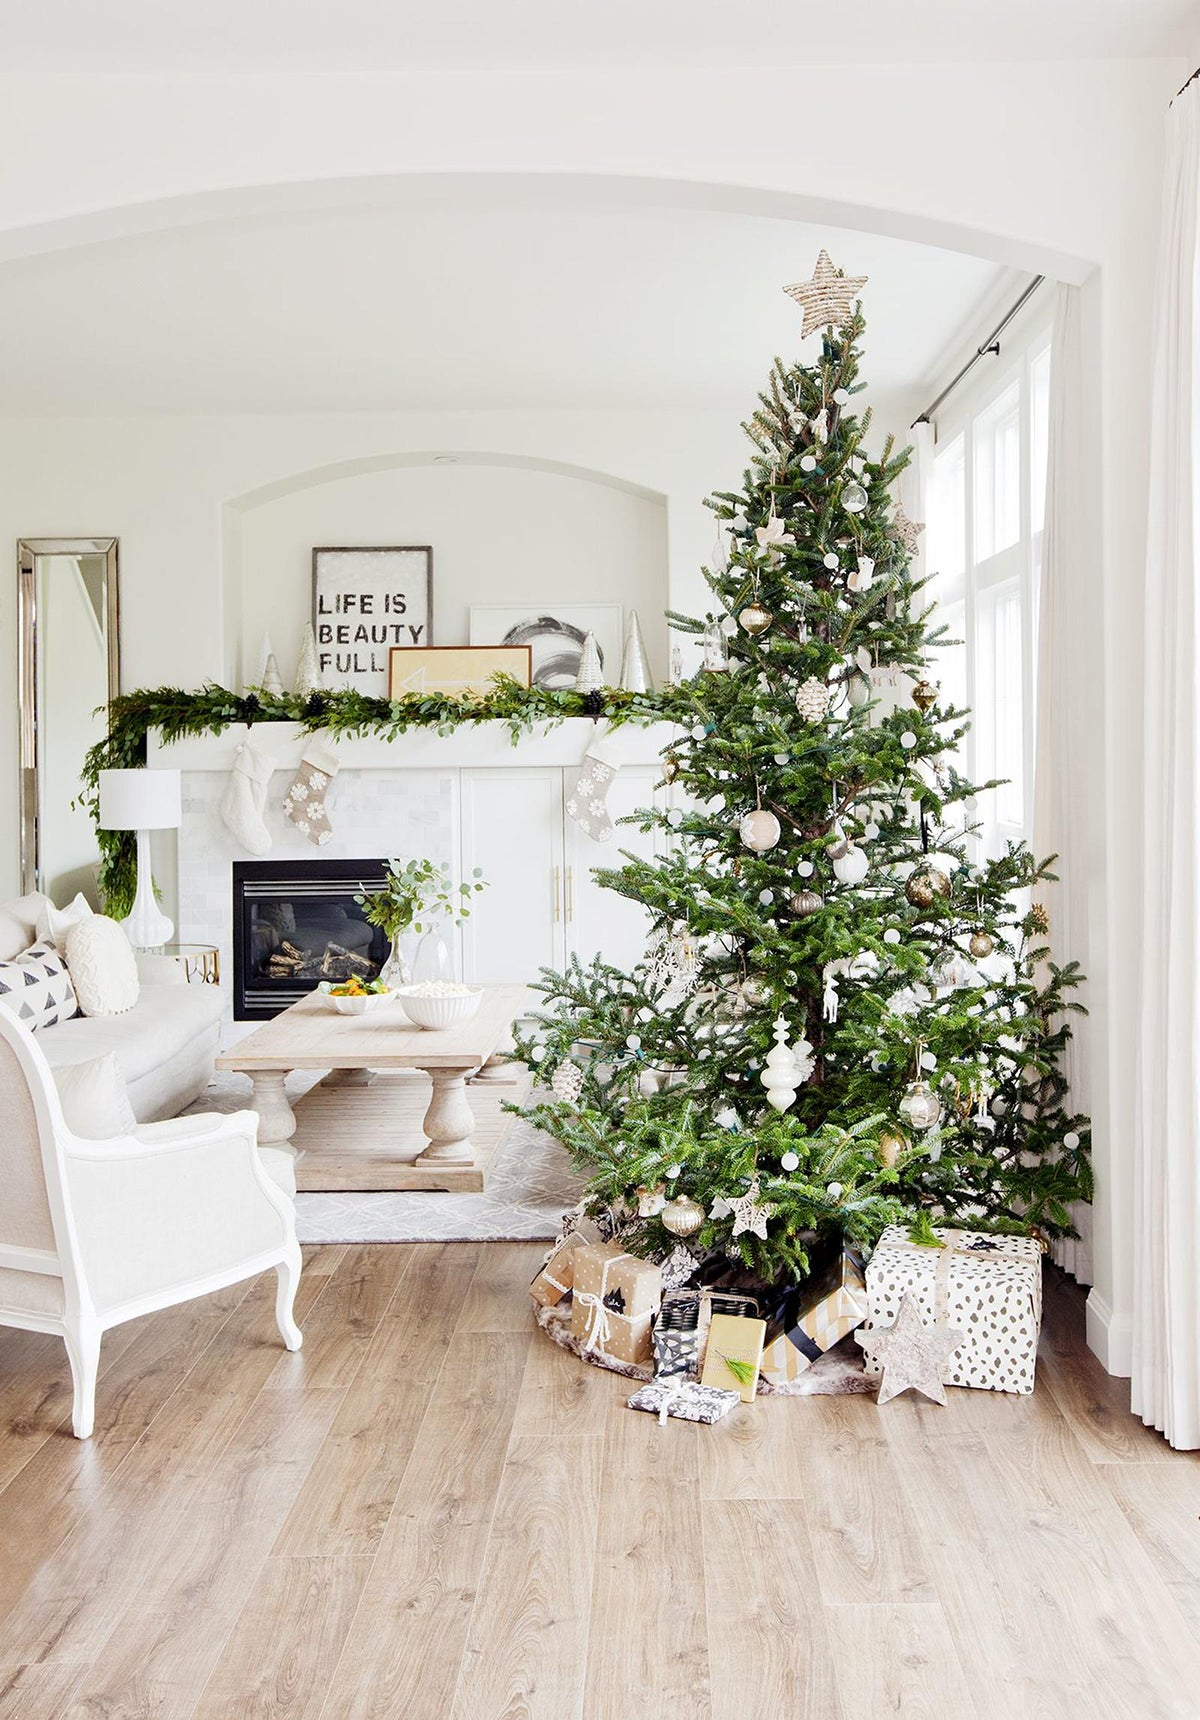 white interior with green Christmas tree and metallic curtain rod brackets